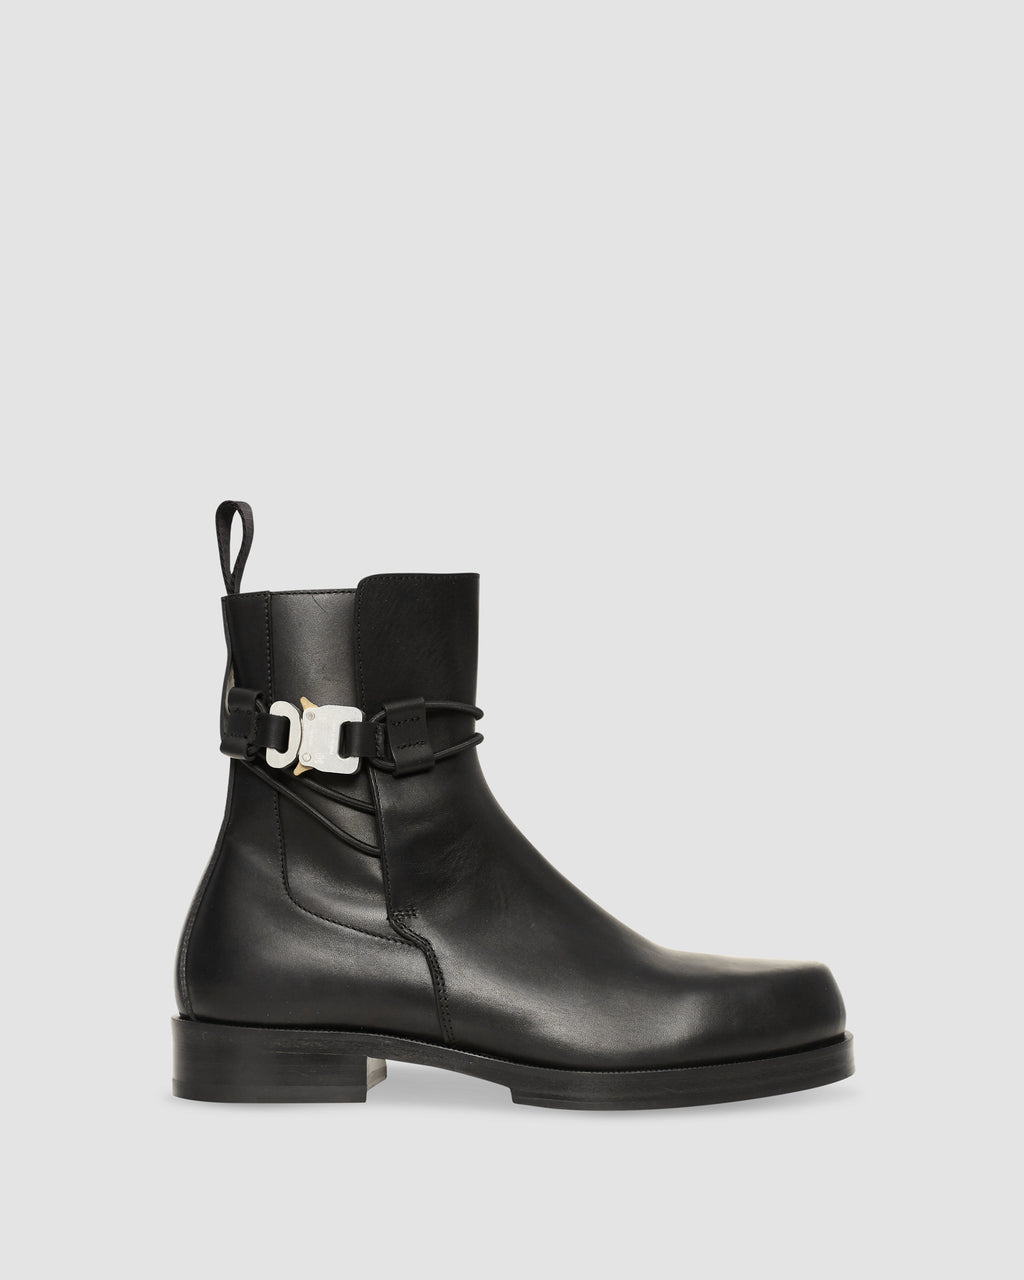 LOW BUCKLE BOOT WITH LEATHER SOLE PRE-ORDER